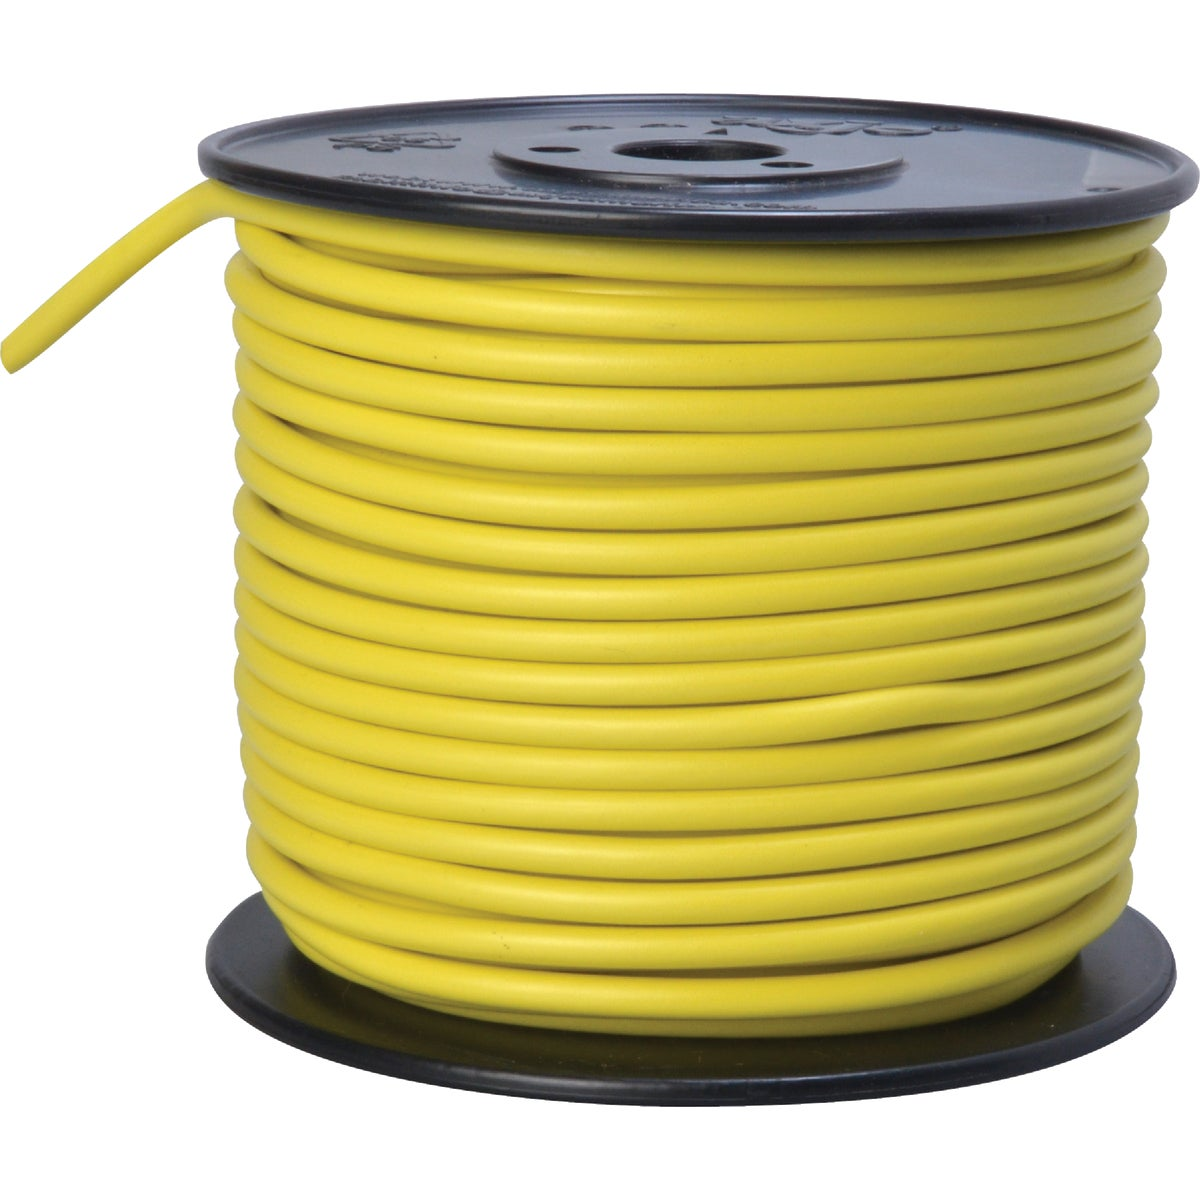 100' 10GA YEL AUTO WIRE - 10-100-14 by Woods Wire Coleman